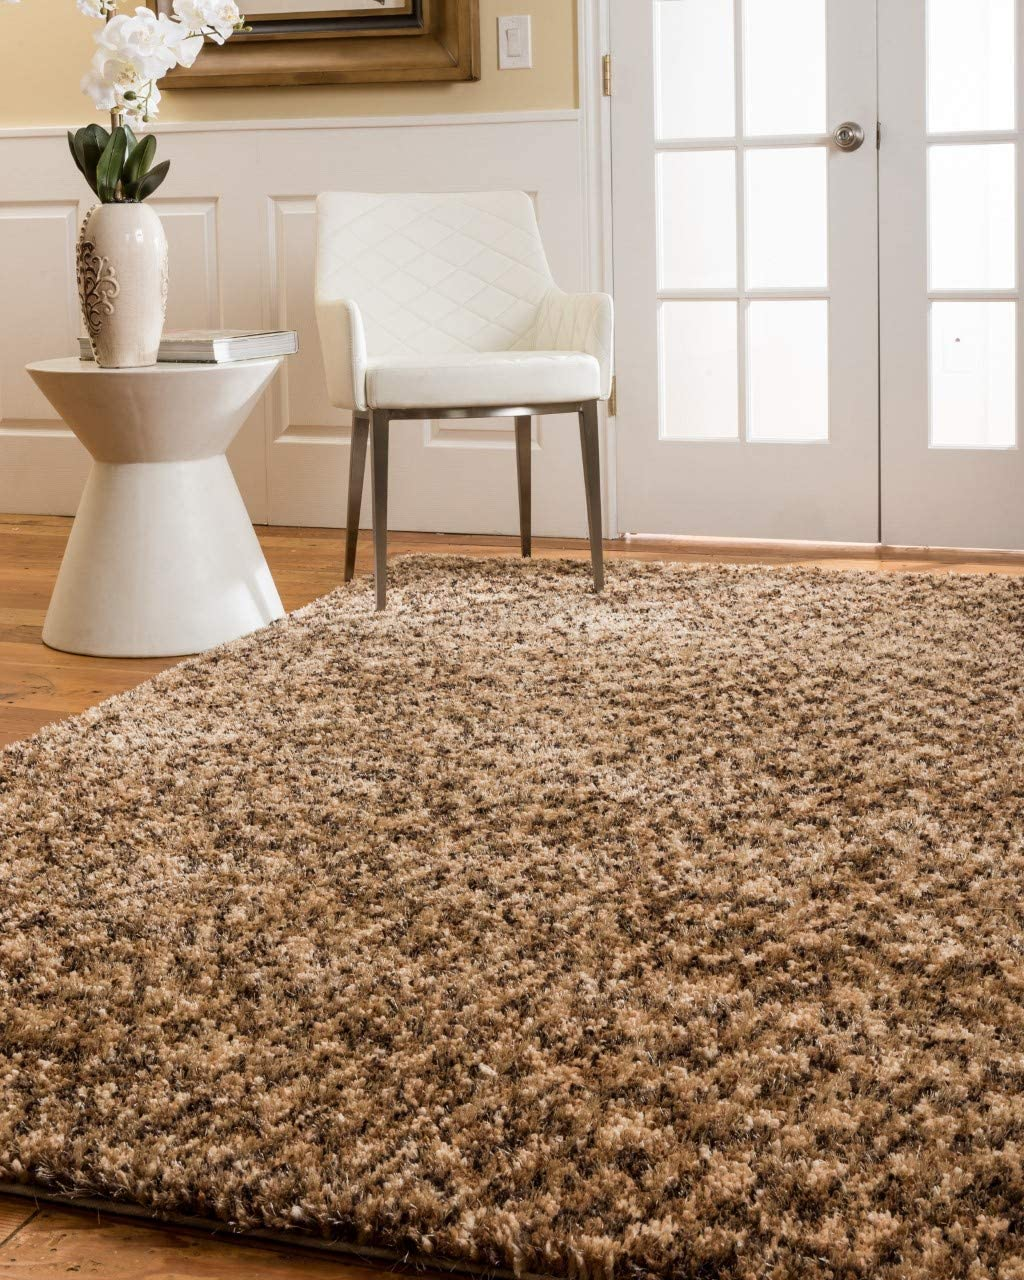 Natural Area Rugs Hand-Crafted Maldives Polyester Rug 8 x 10 Honey